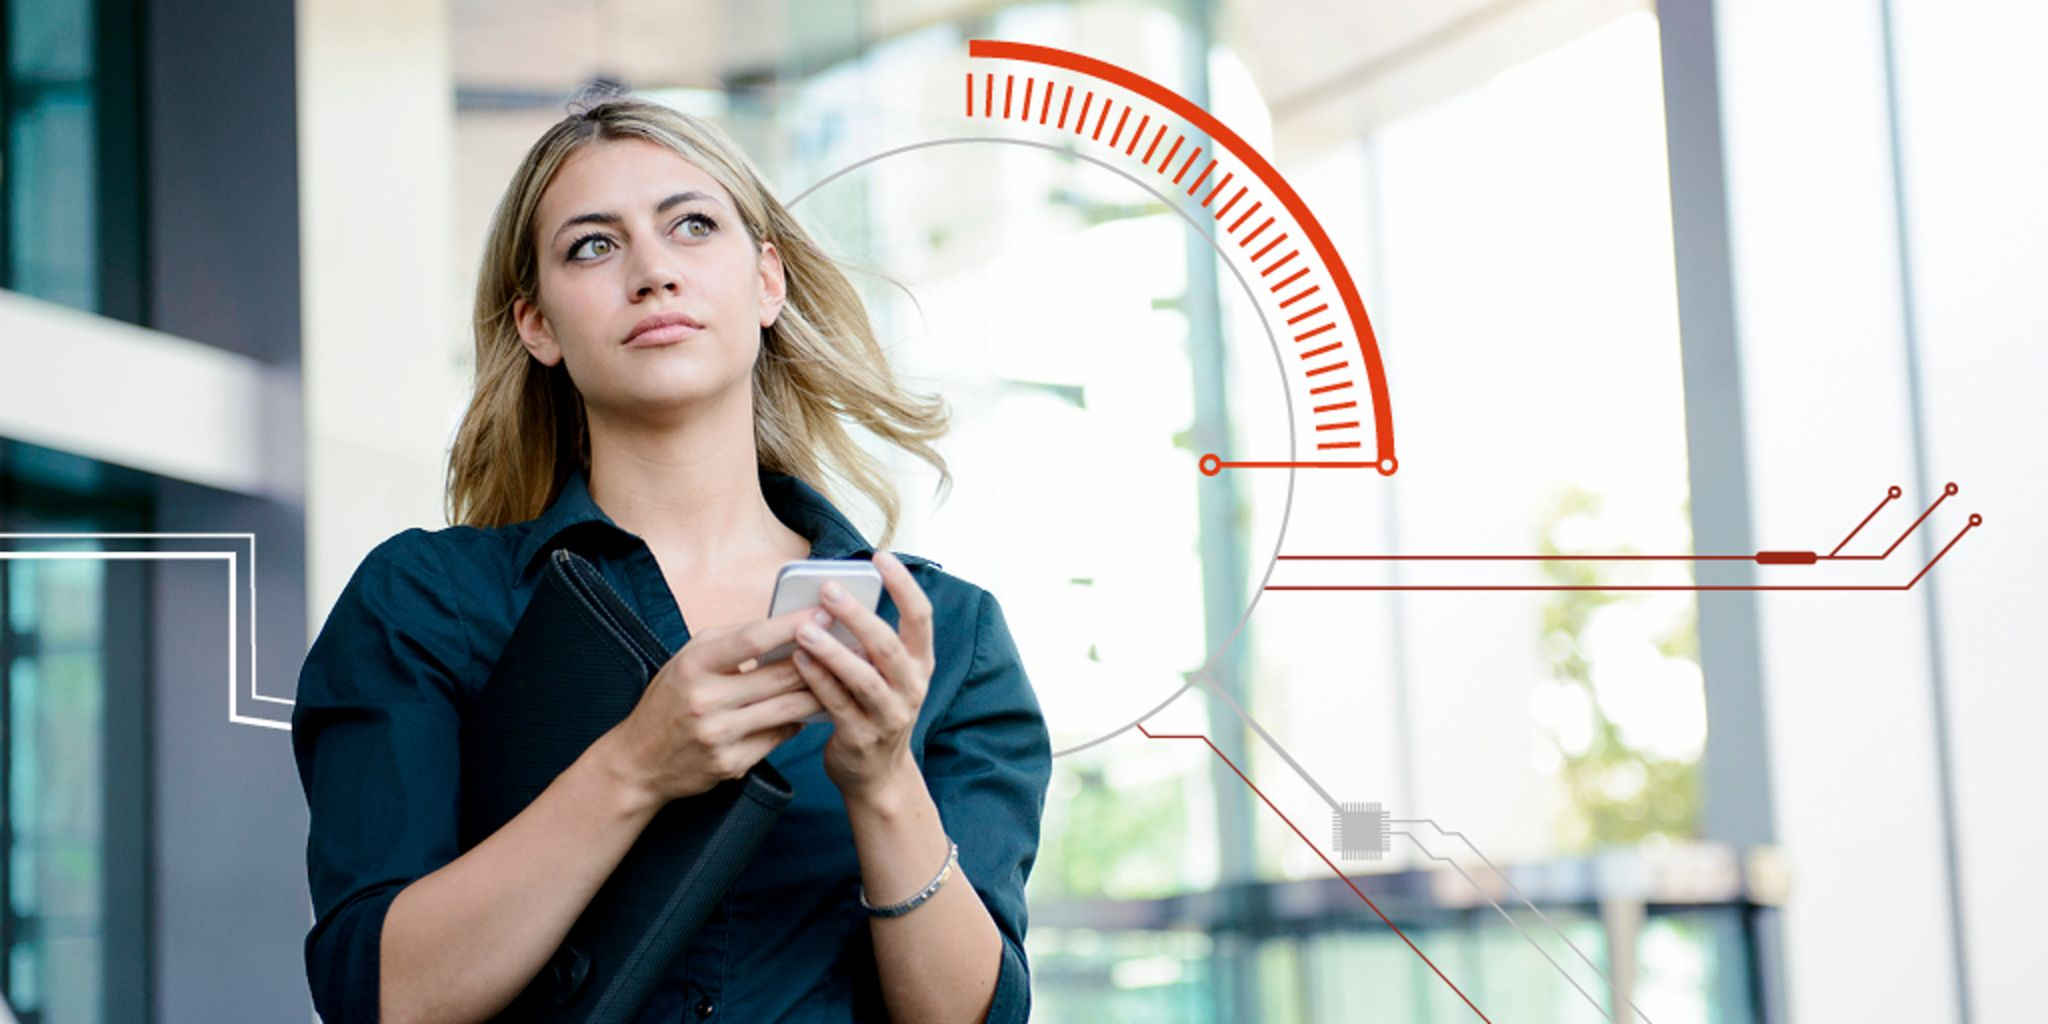 Digital trust: Young woman using her smartphone in front of a building.